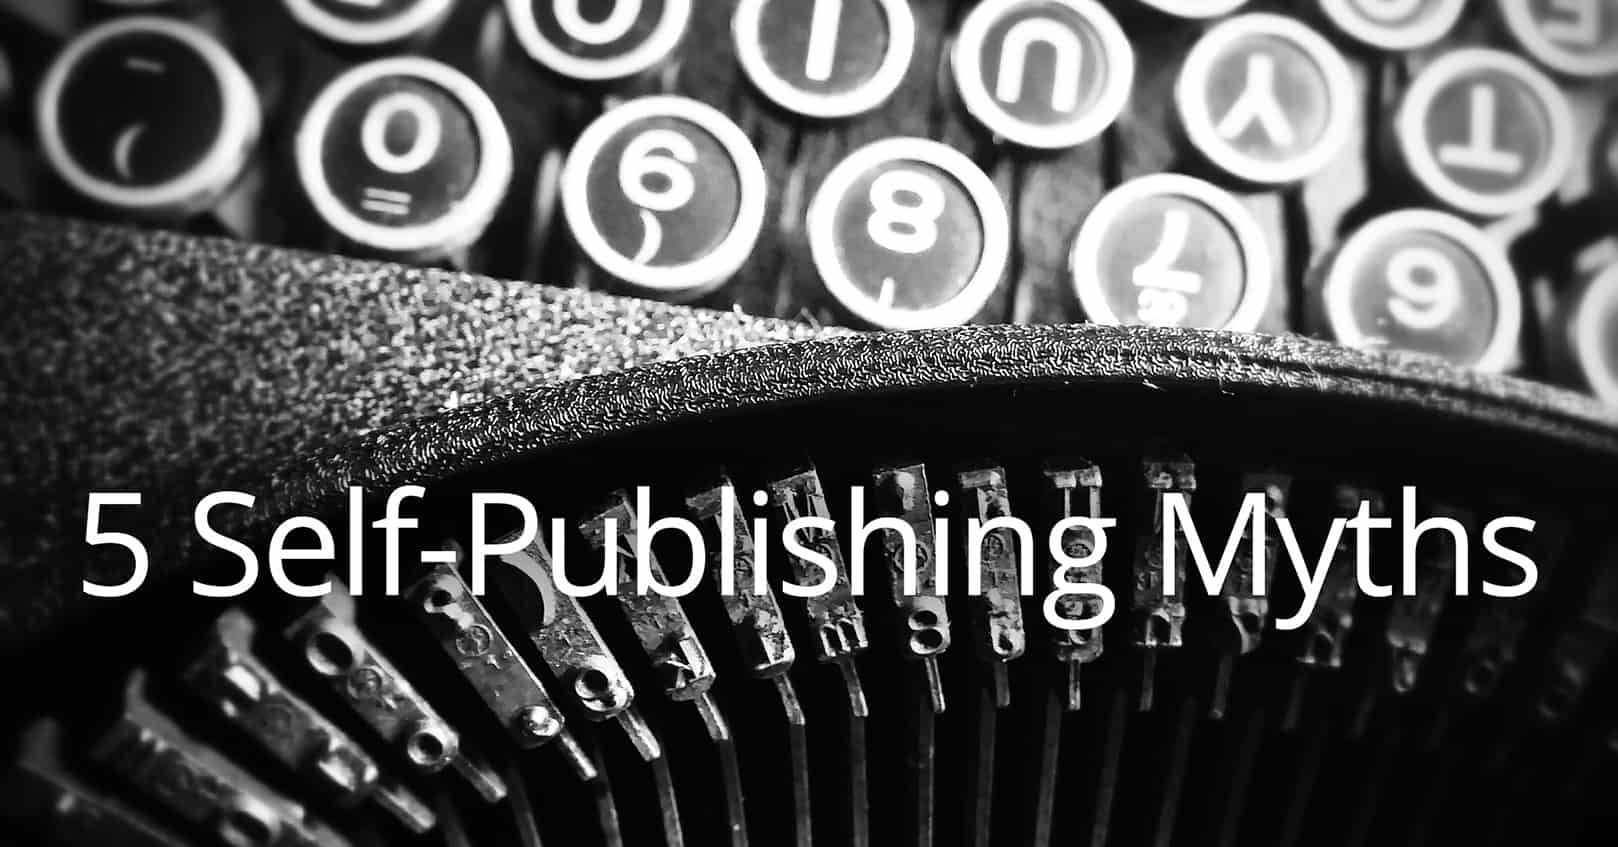 self-publishing myths